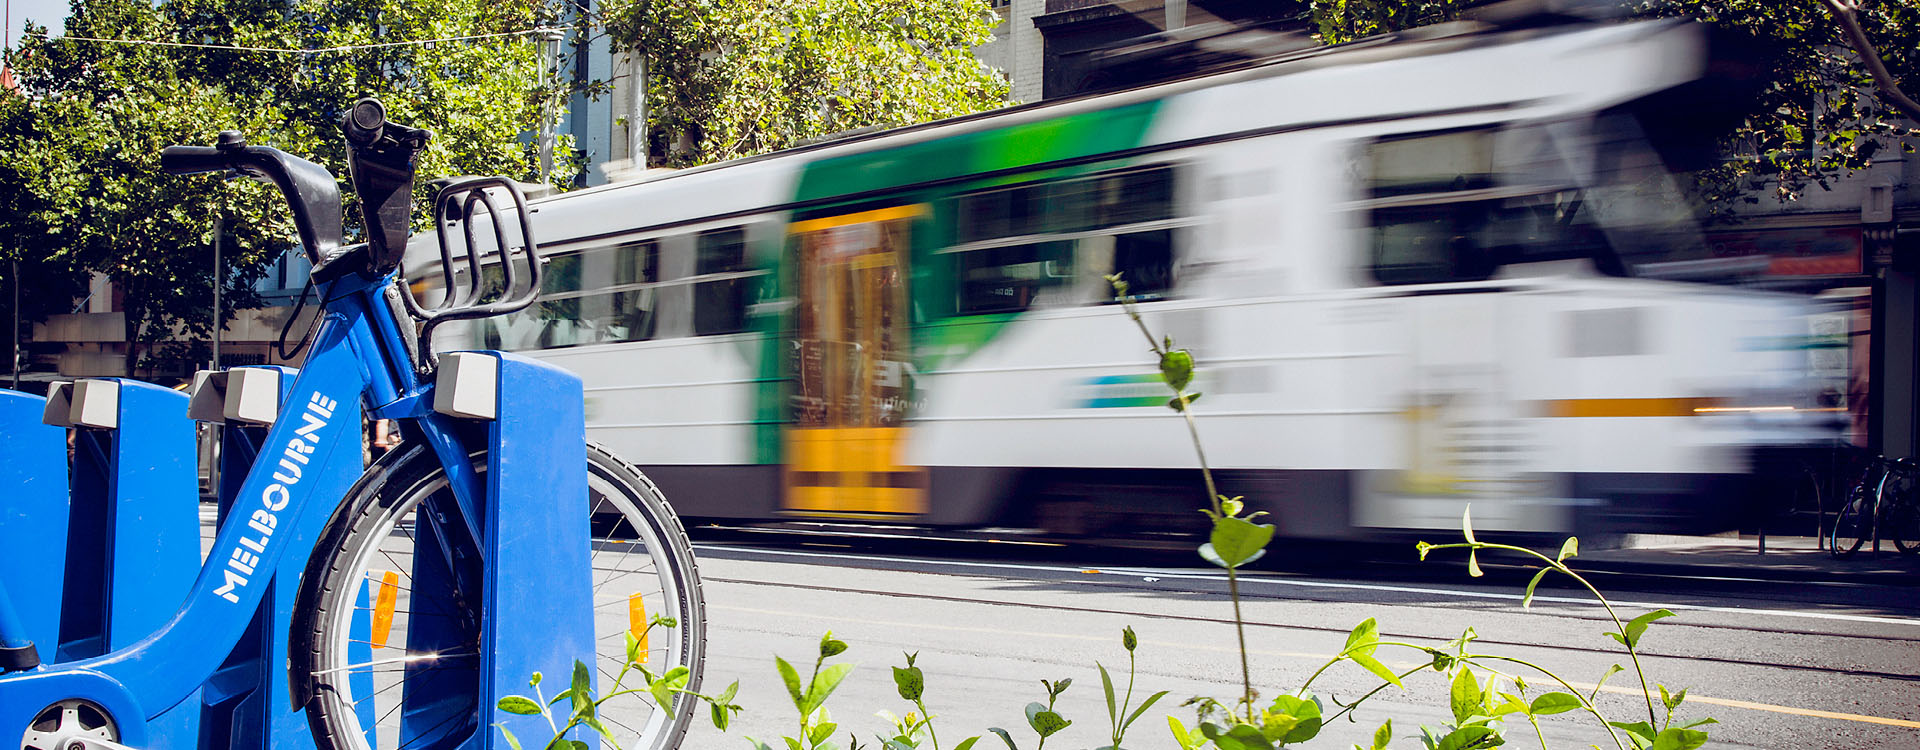 bnr-melbourne-tram-city-bicycle